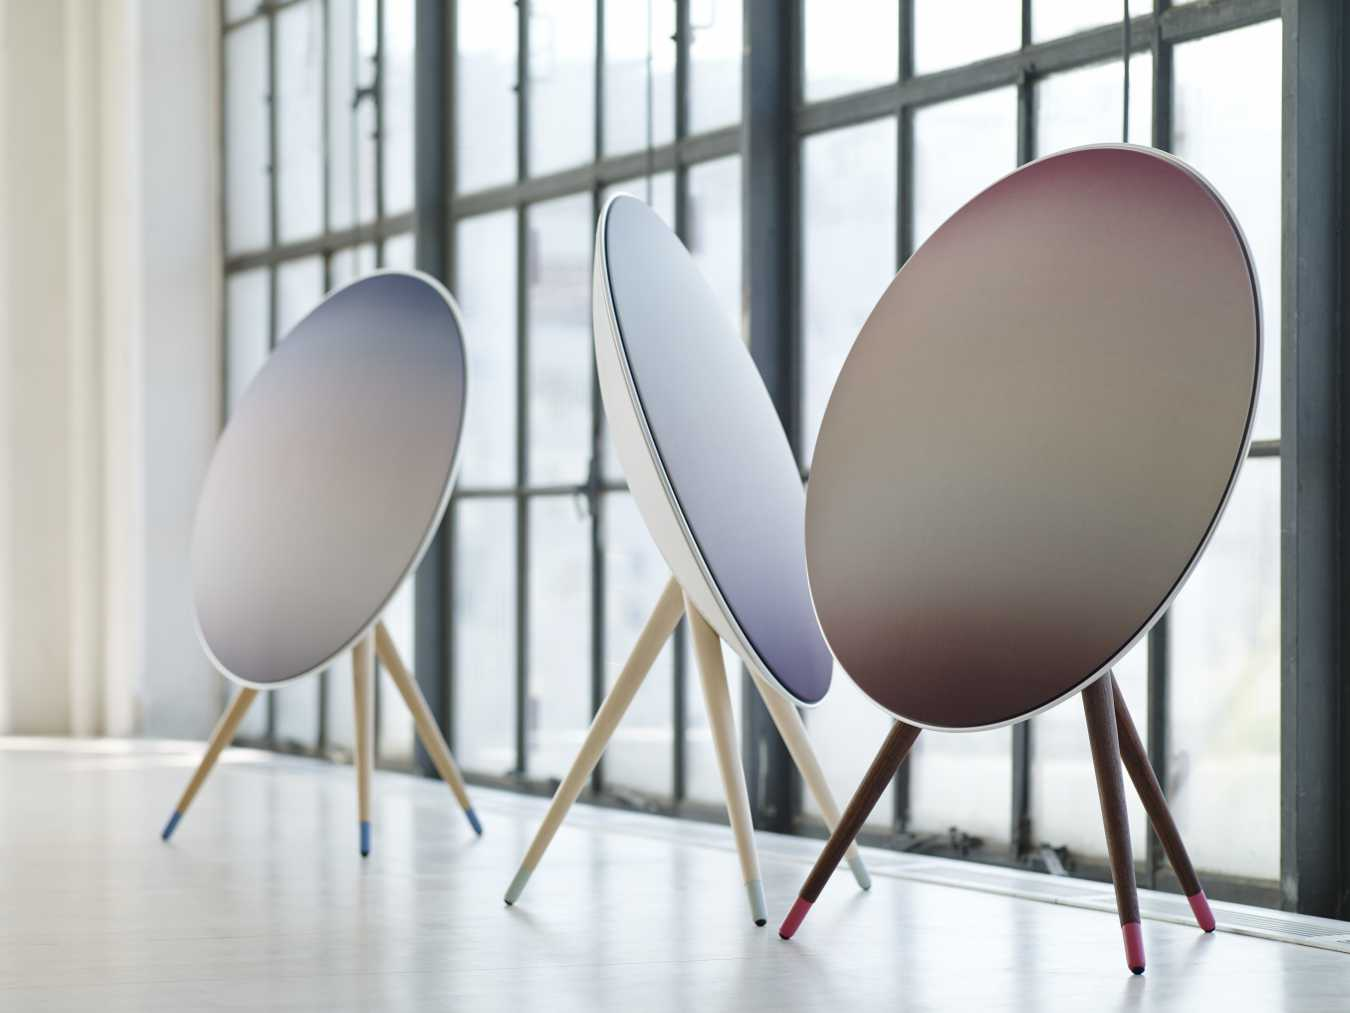 NUVO Daily Edit: Holiday Wish List, Bang & Olufsen Speaker